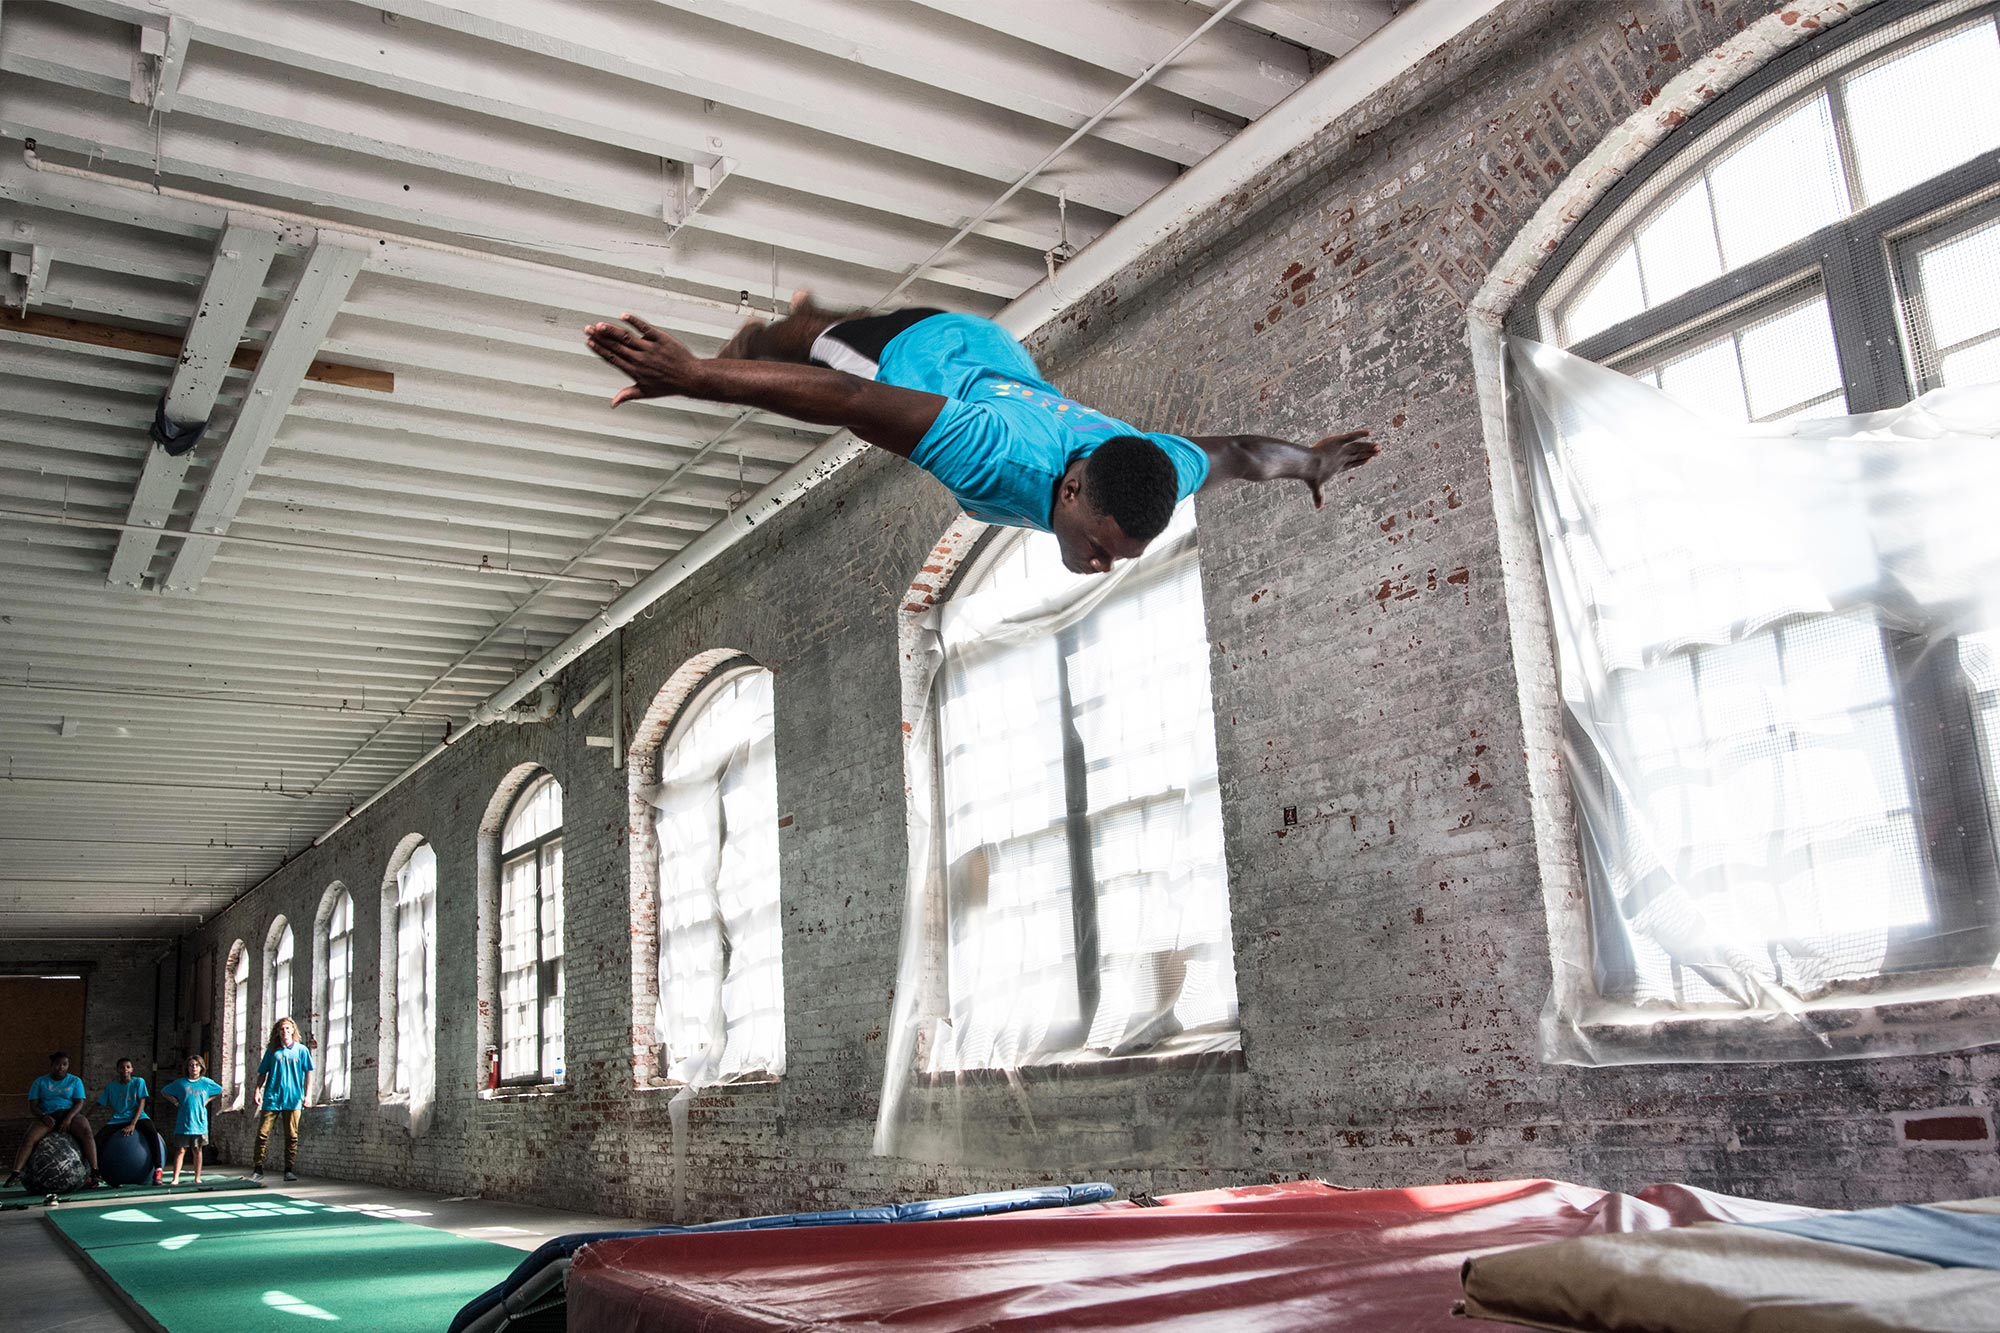 Trenton Circus Squad: Take a Big Leap initiative